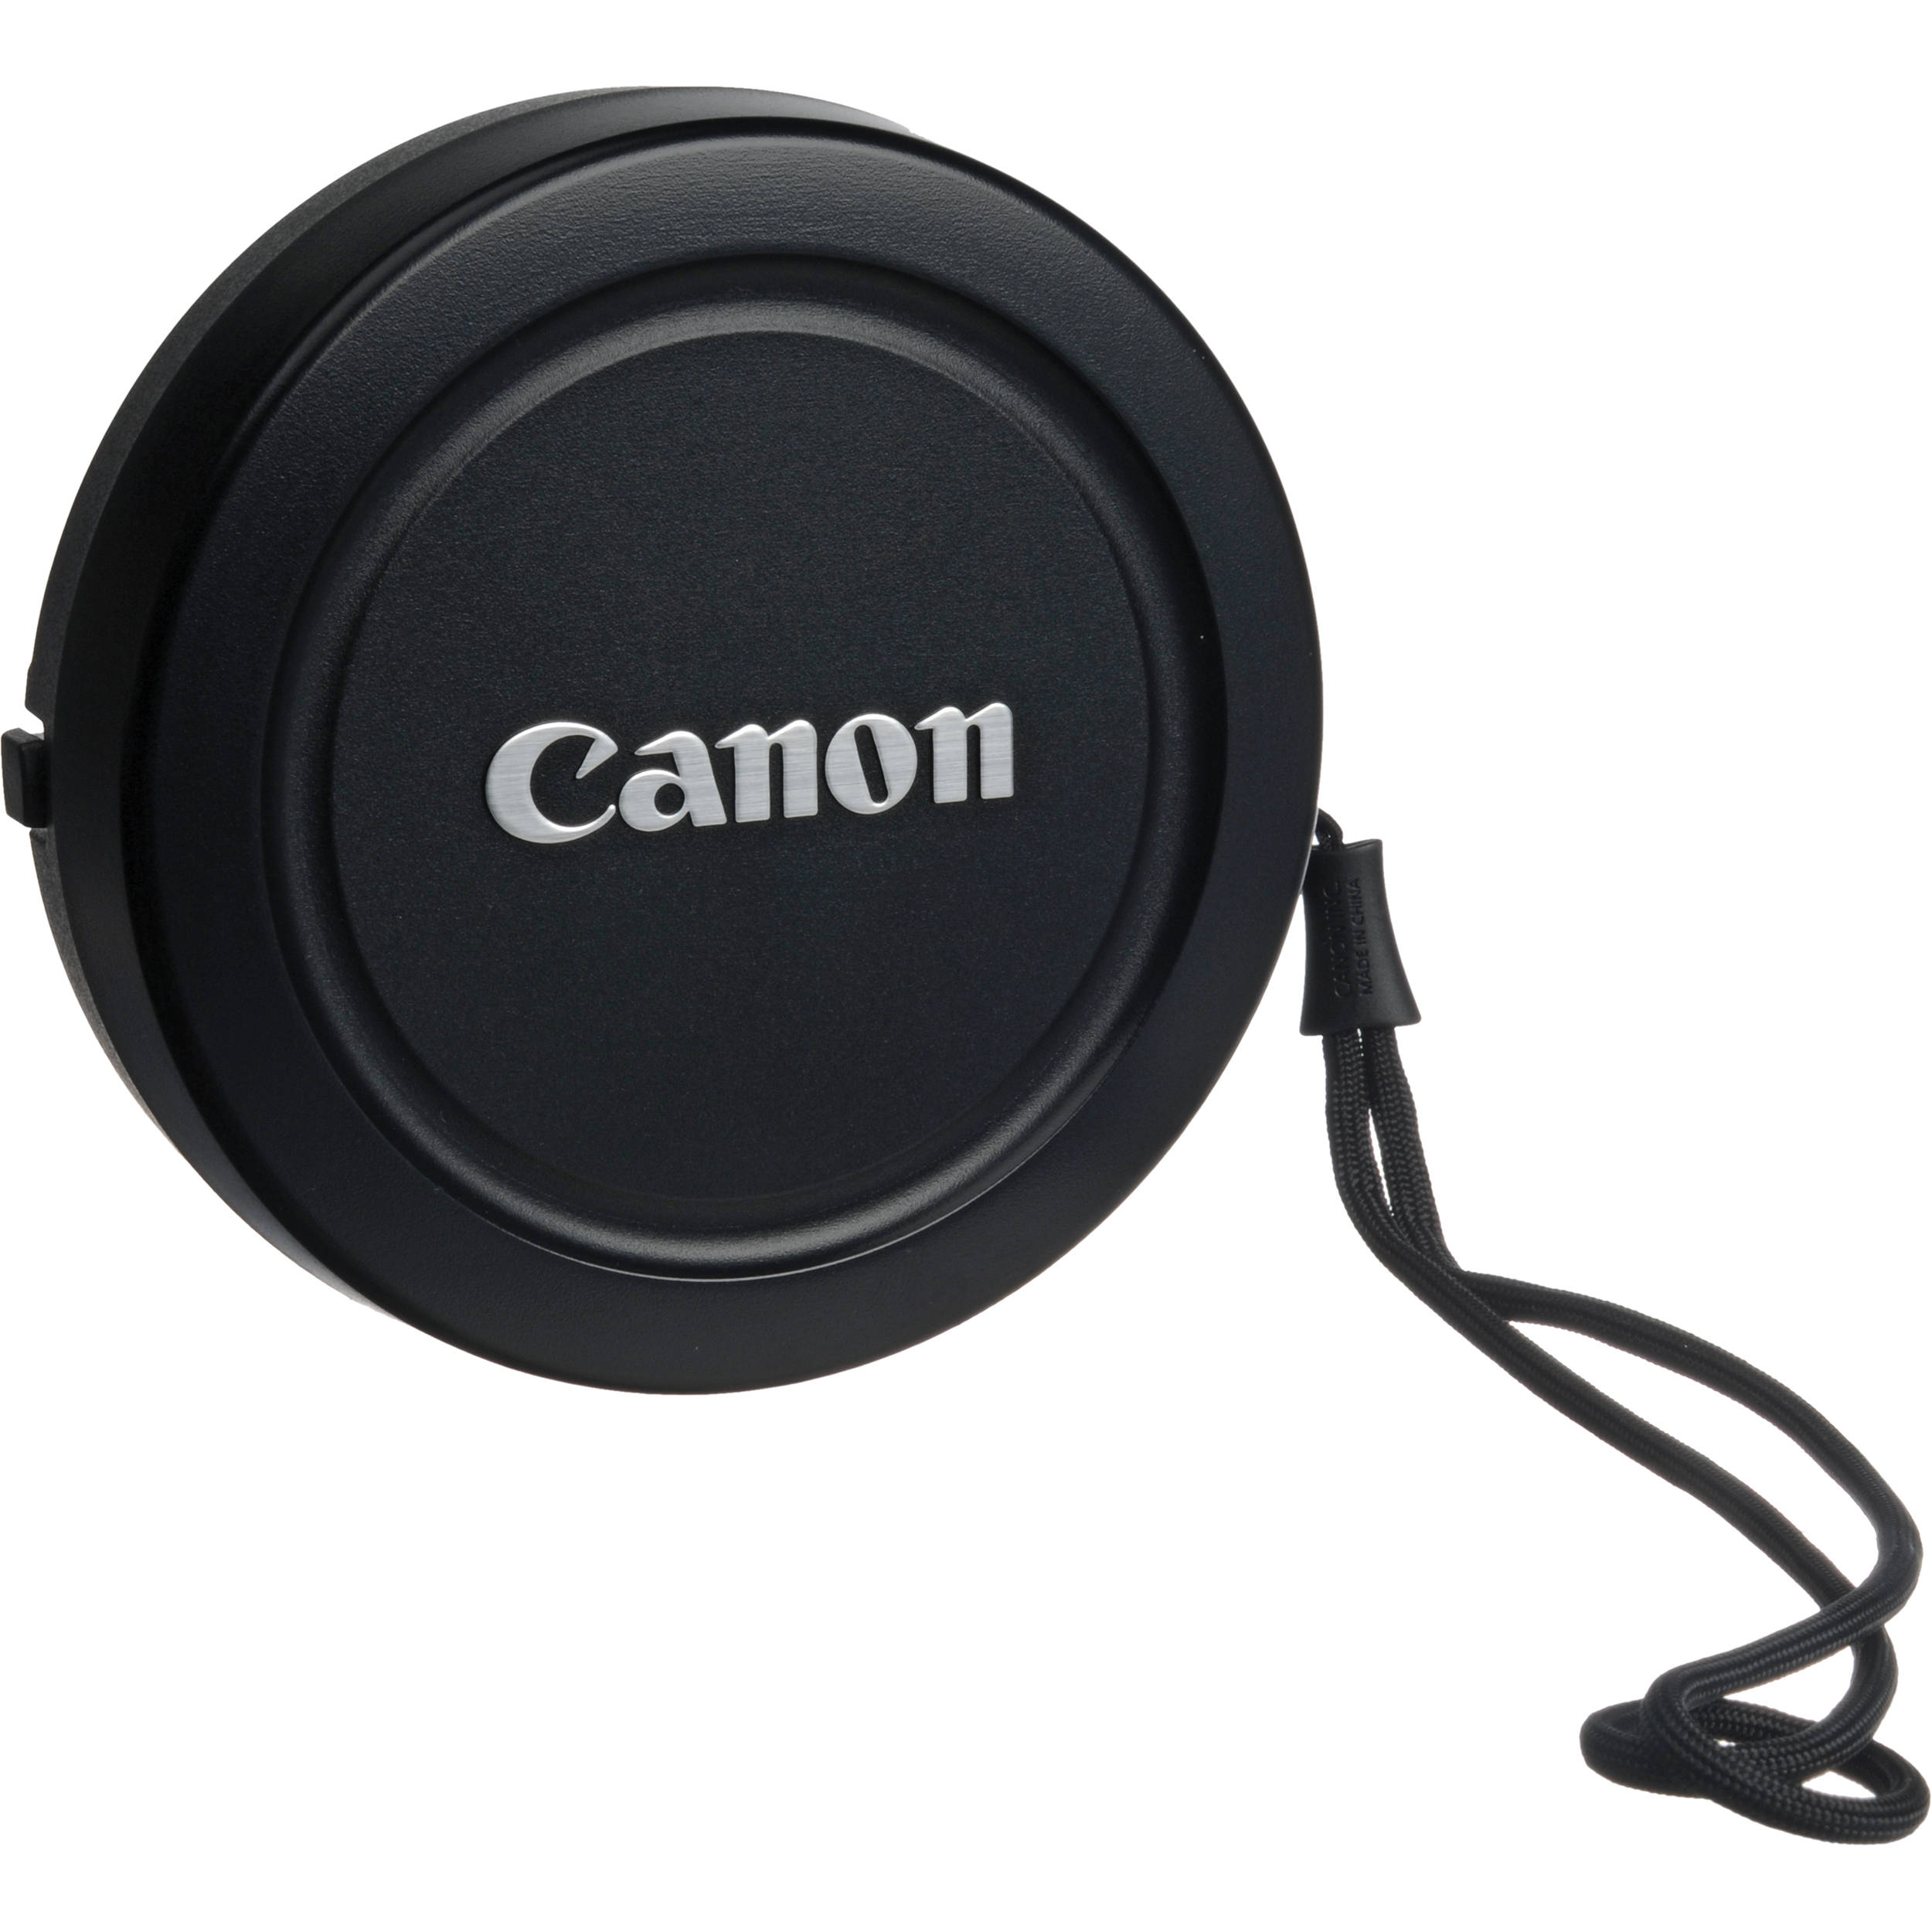 49ef5b8e0 Canon Lens Cap for TS-E 17mm f/4L Tilt-Shift Lens 3557B001 B&H